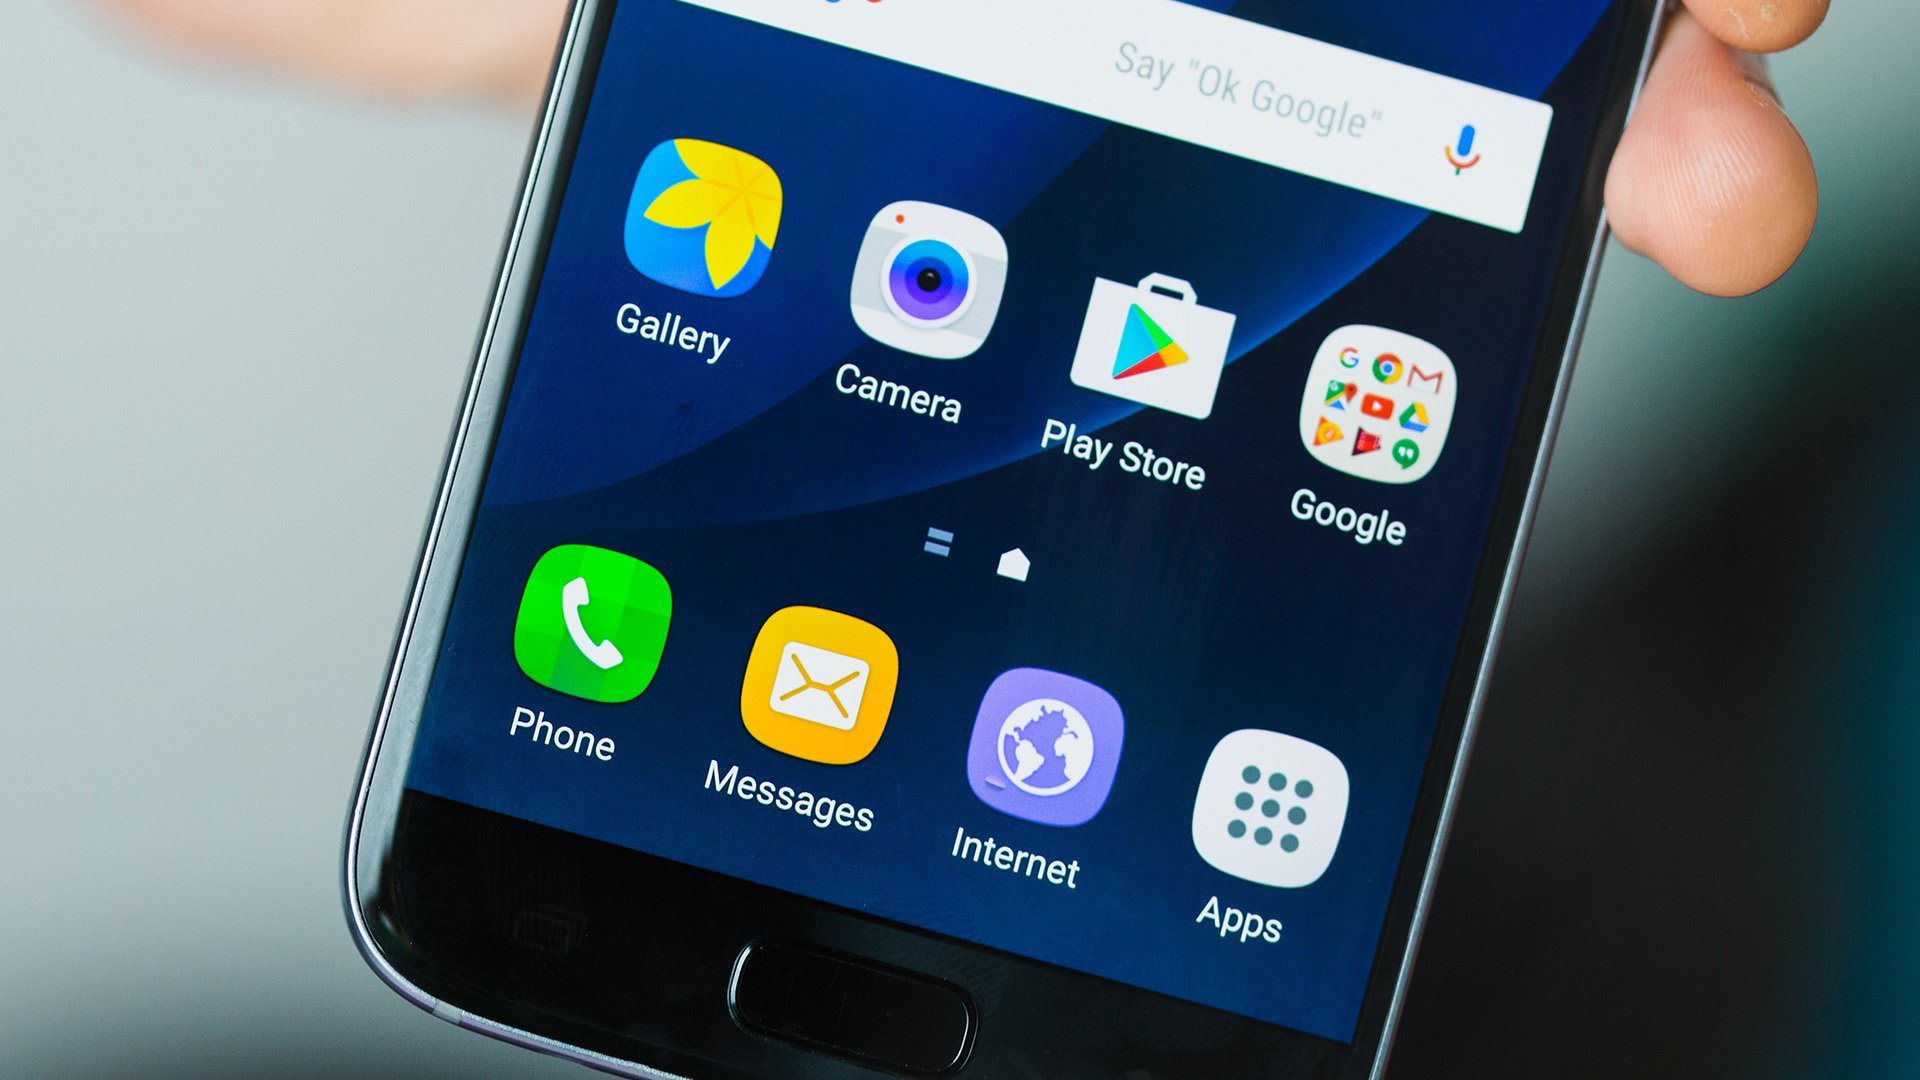 telstra smart touch 2 user guide